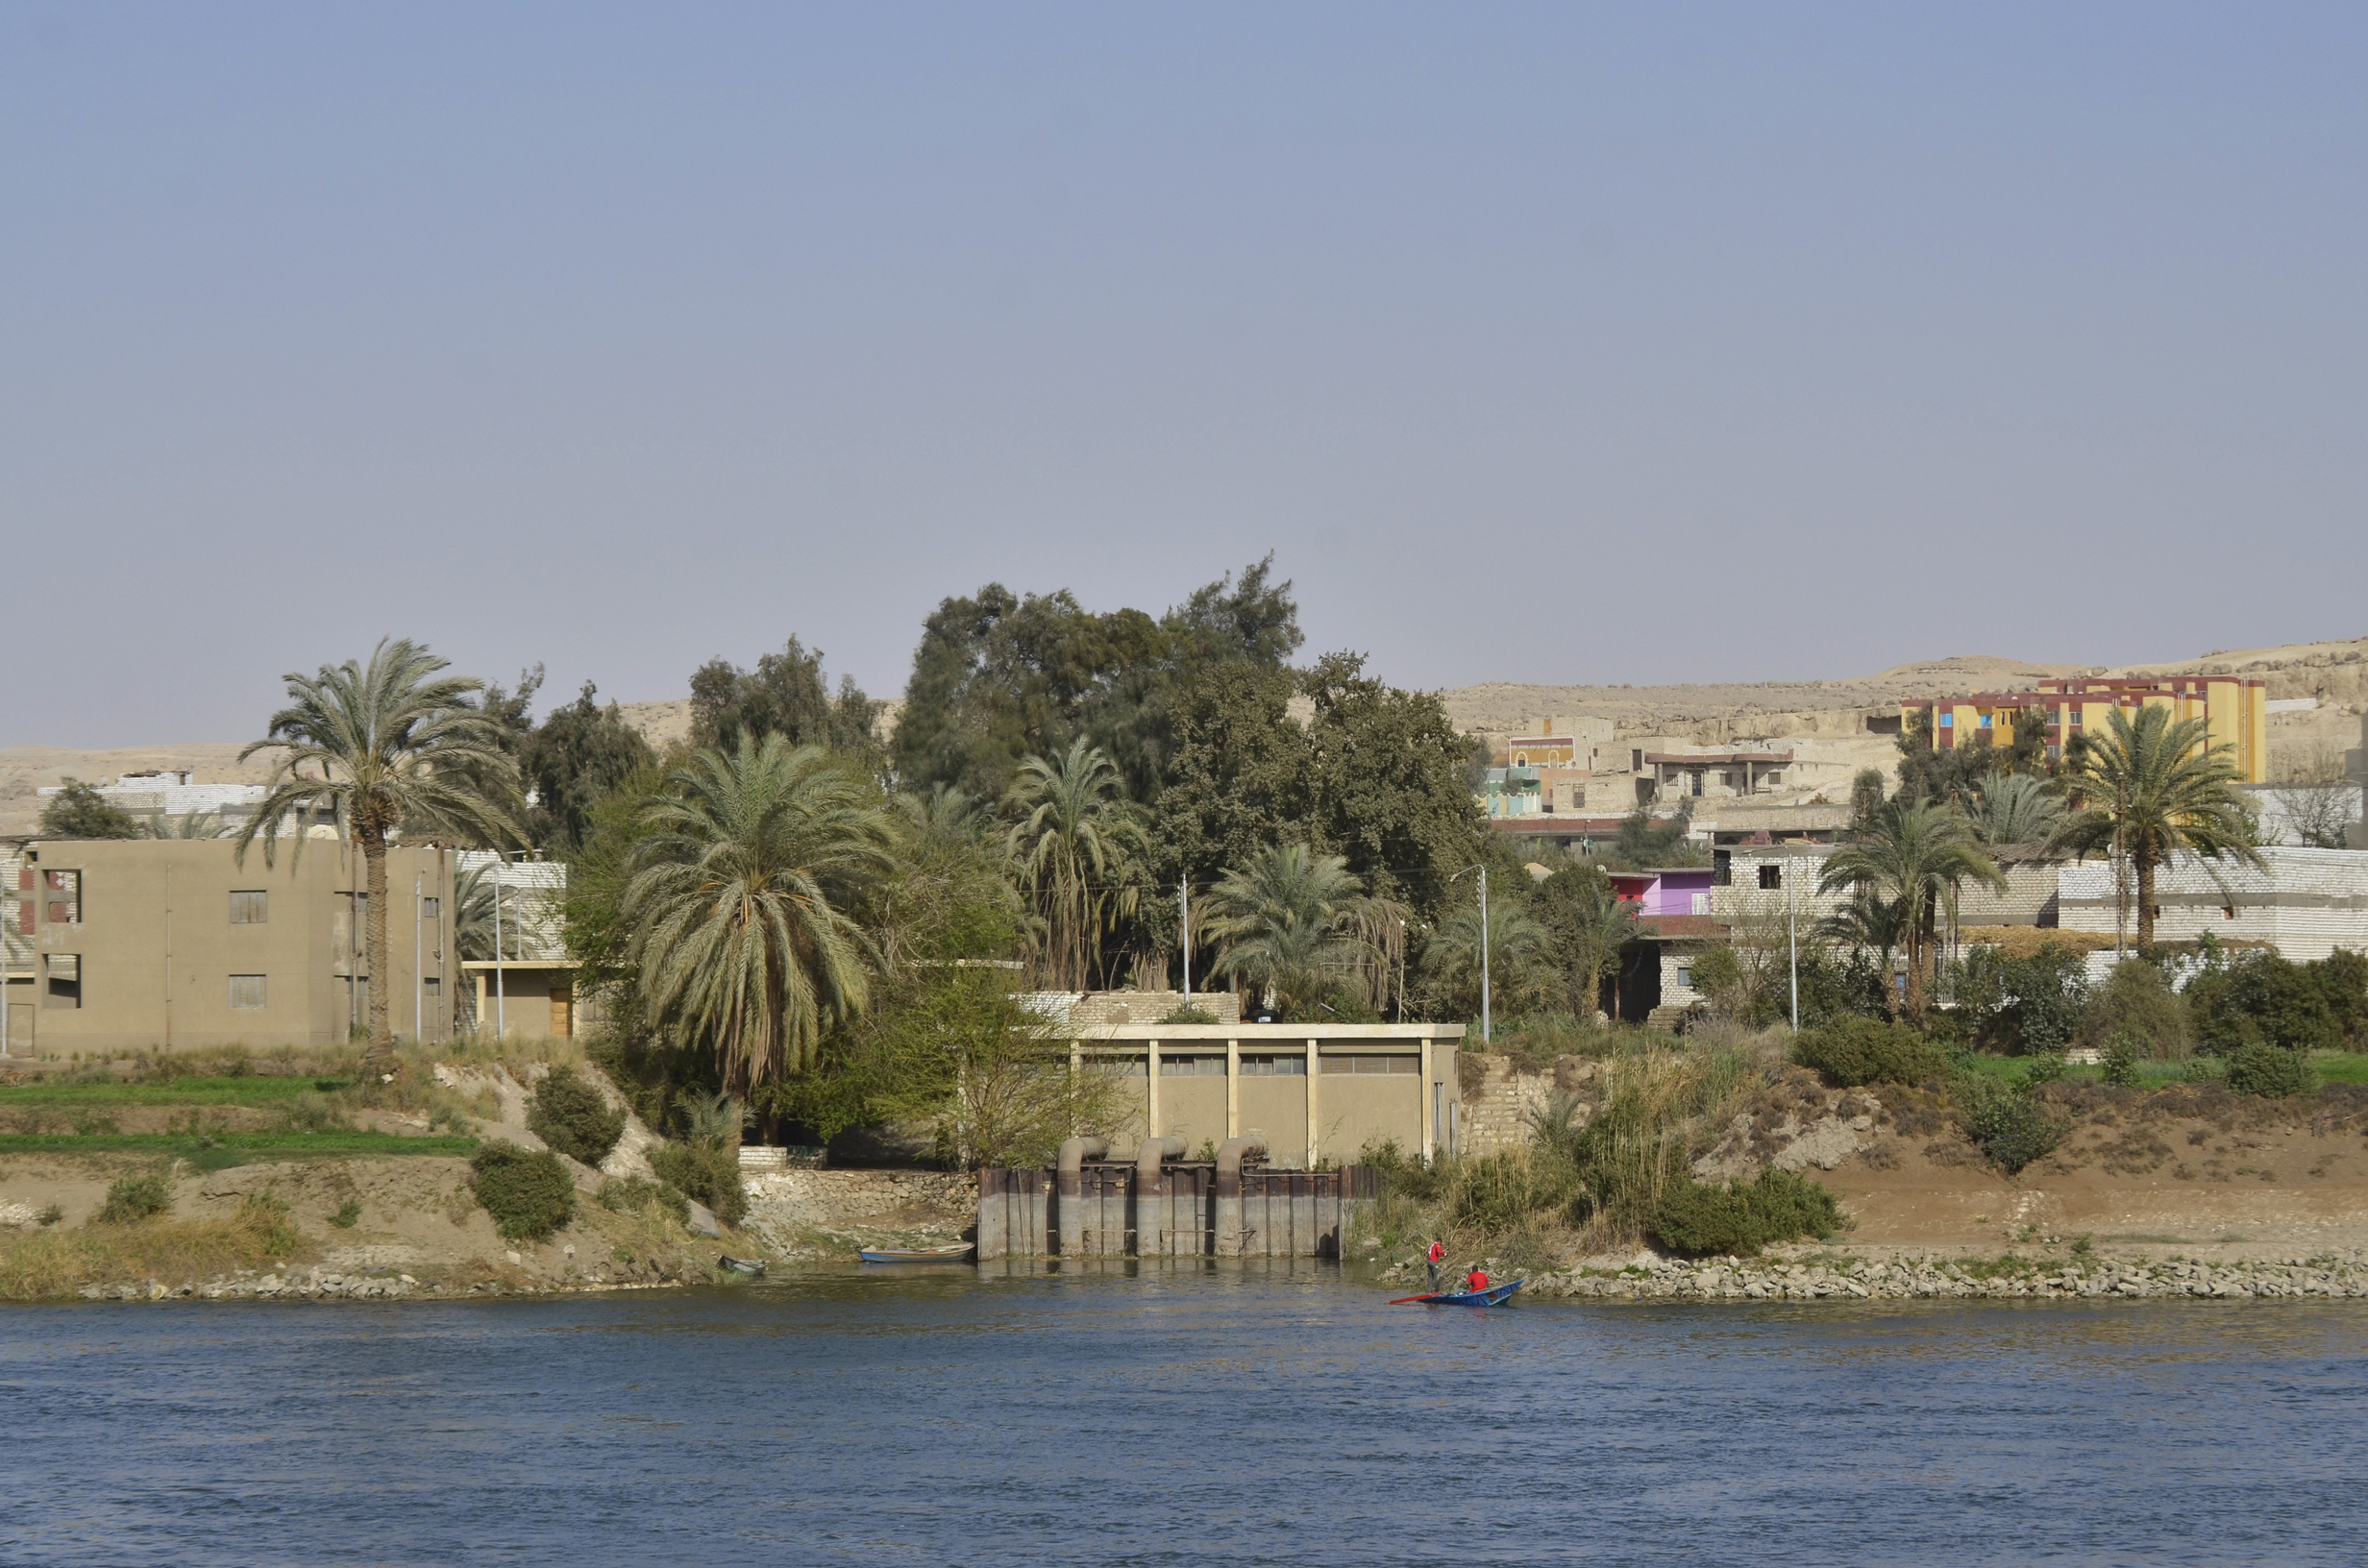 Egypt water supply, nile river